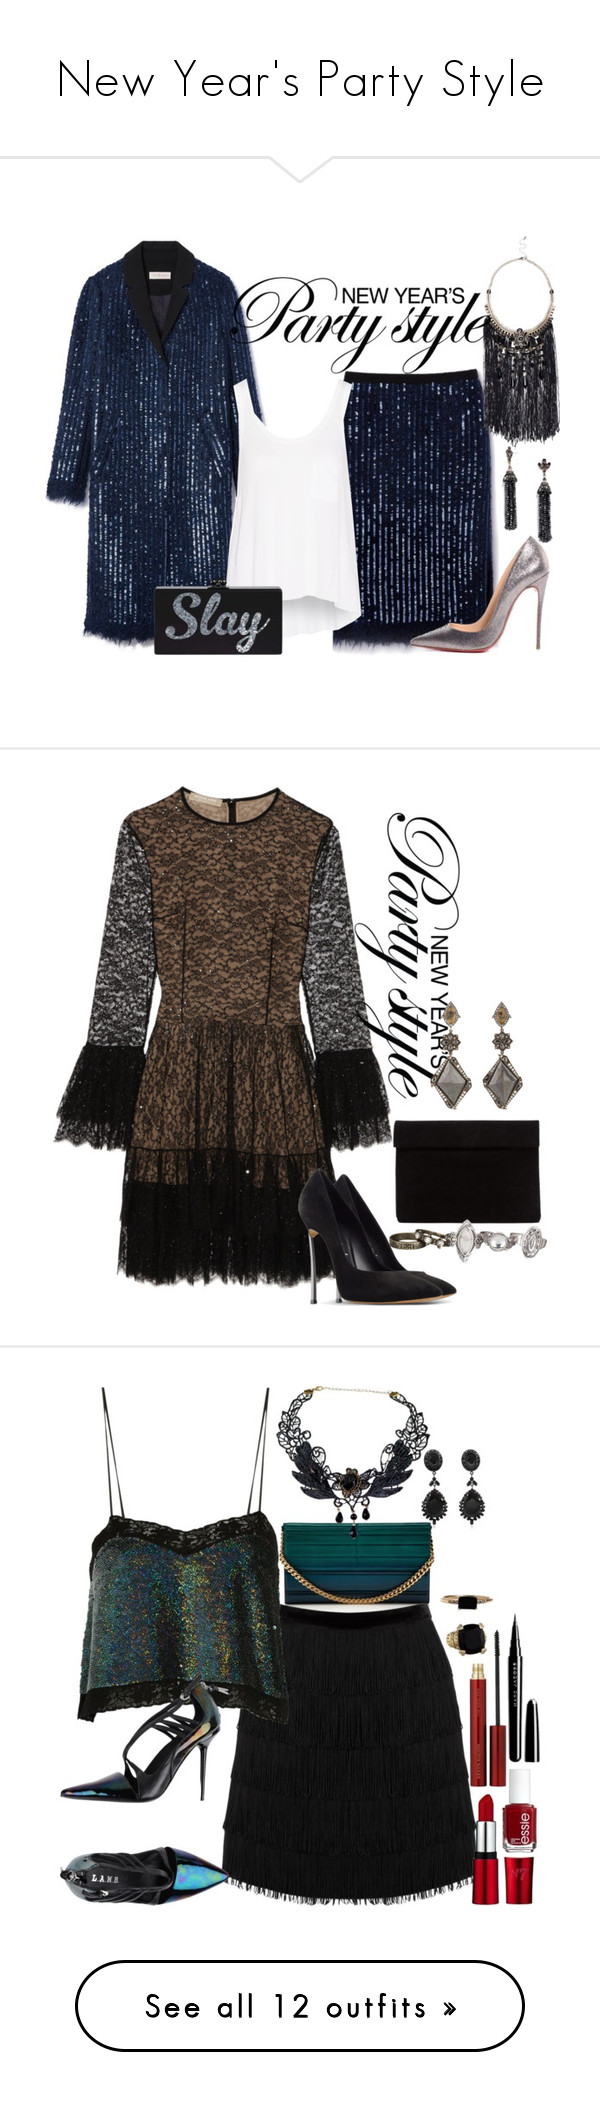 new years party style by fashion nova liked on polyvore featuring text words new year articles backgrounds phrase quotes saying tory burch and